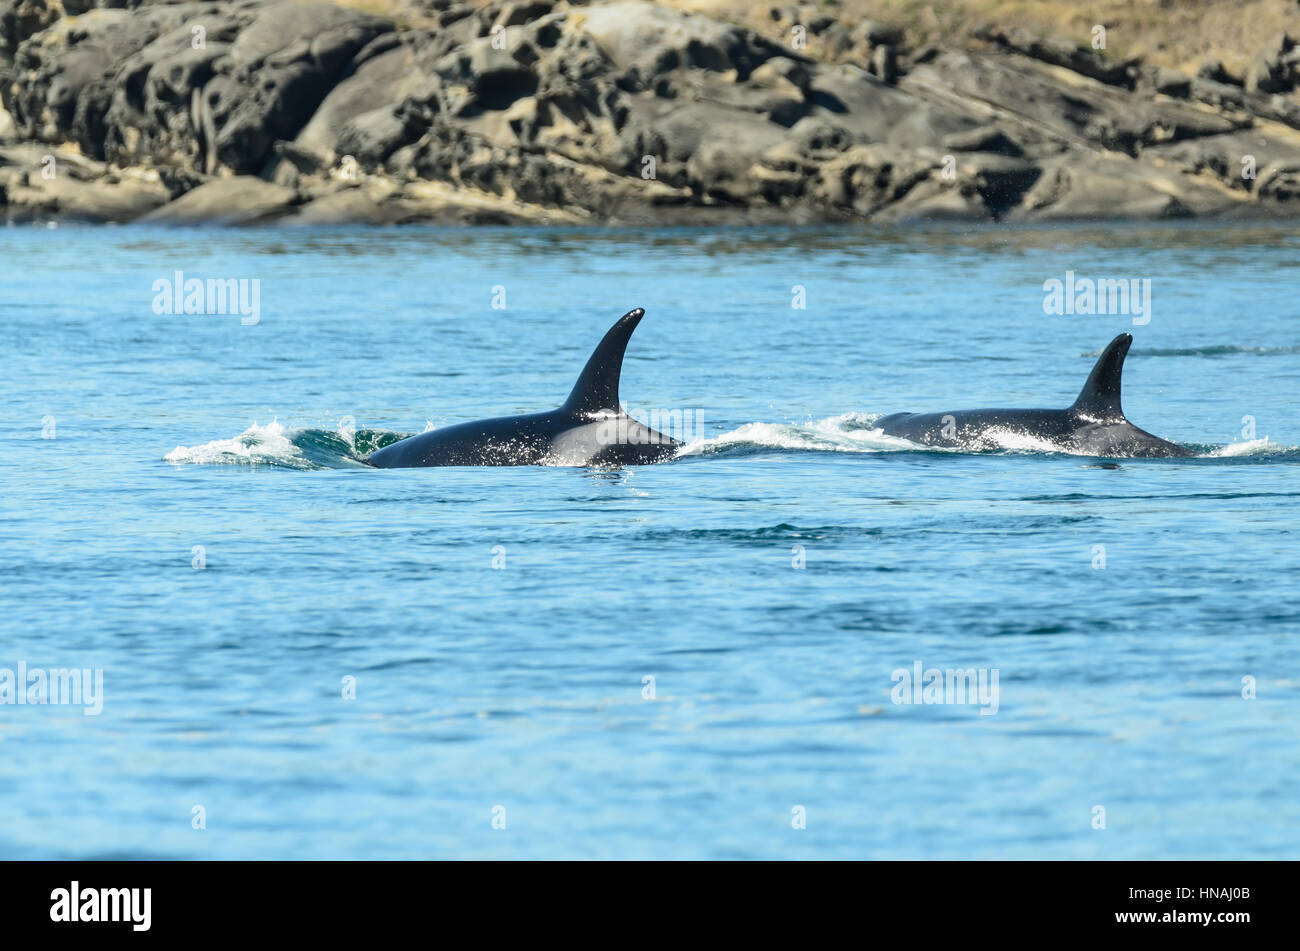 juvenile Southern Resident orcas, Orca orcinus, L-pod, Salish Sea, British Columbia, Canada, Pacific, Endangered. - Stock Image